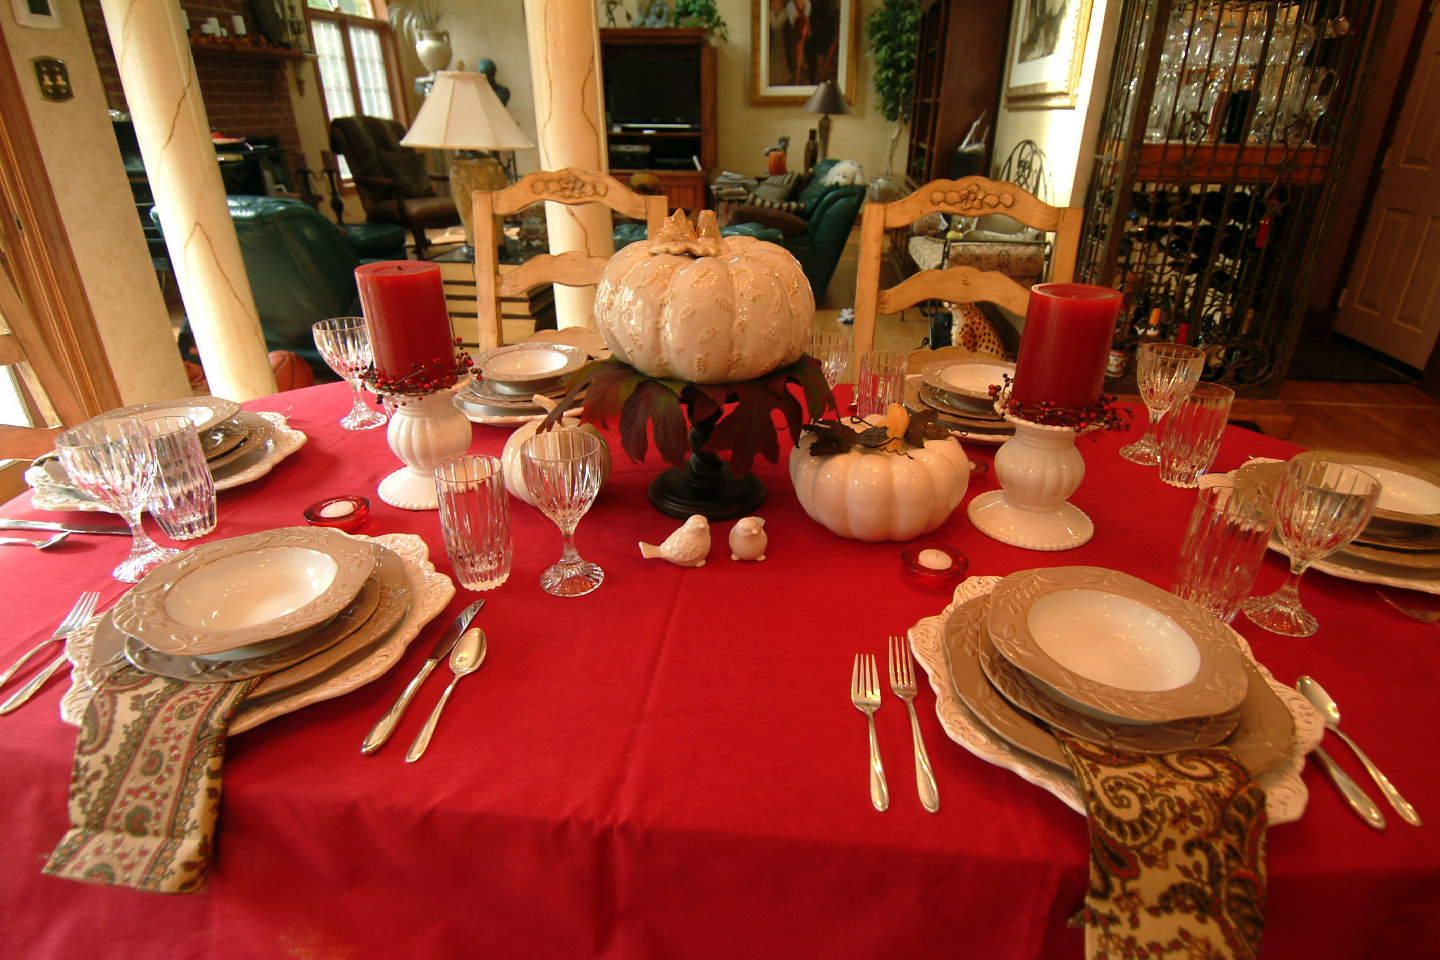 The Centerpiece Pumpkin Came From A Local Gift Shop Thatu0027s Now Closed, And  The Little Bird Su0026P Shakers Are From Pier 1. White Candle Holders Are From  Home ...